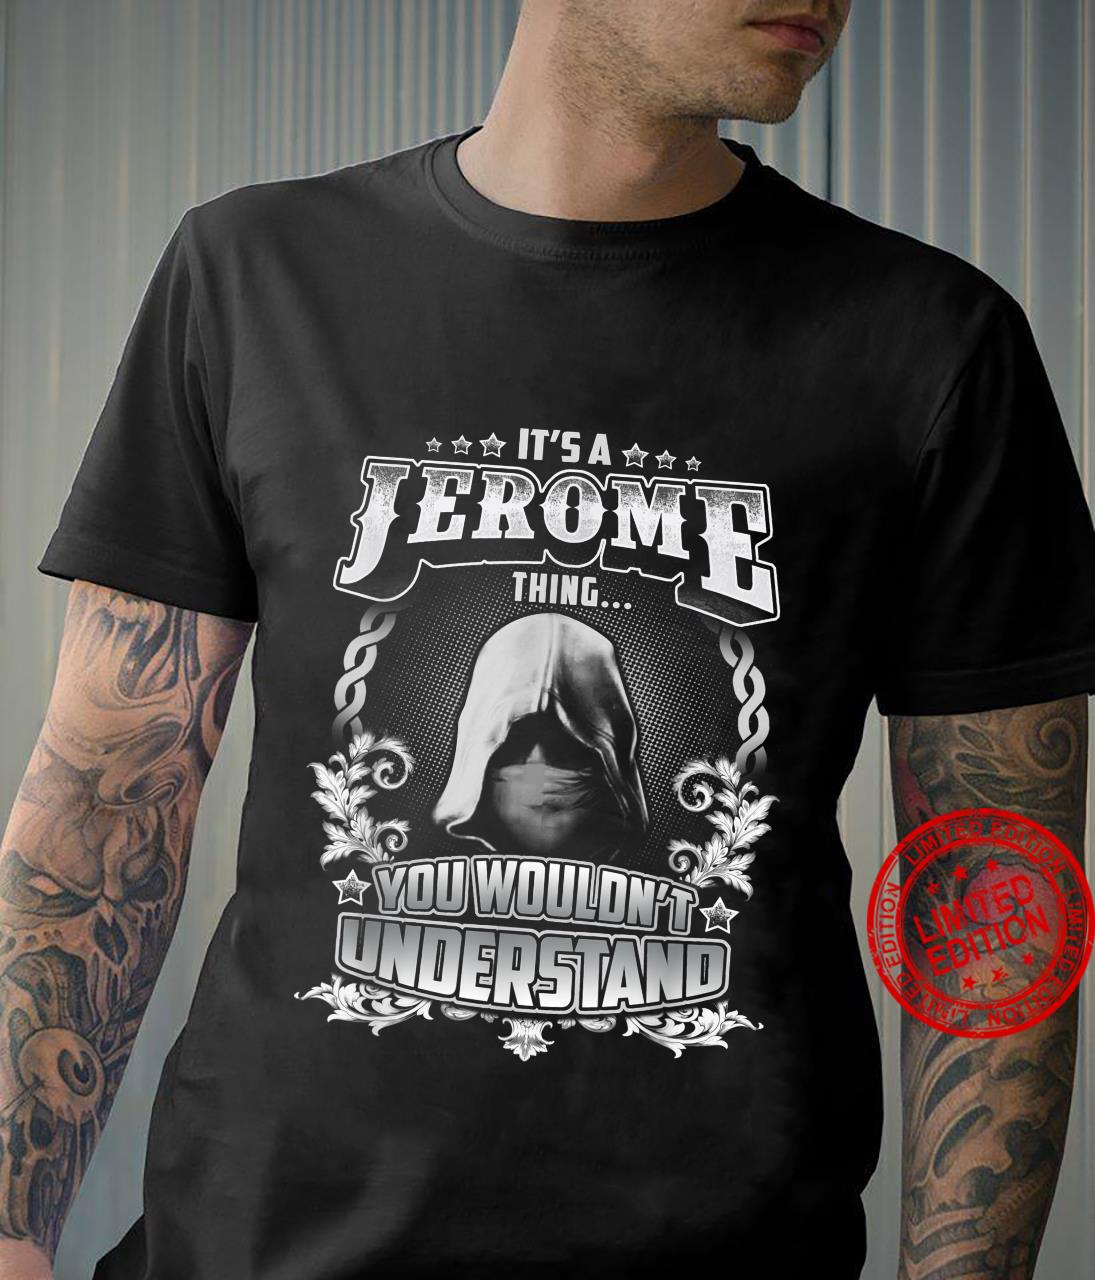 It's A JEROME Thing You Wouldn't Understand. JEROME Named Shirt